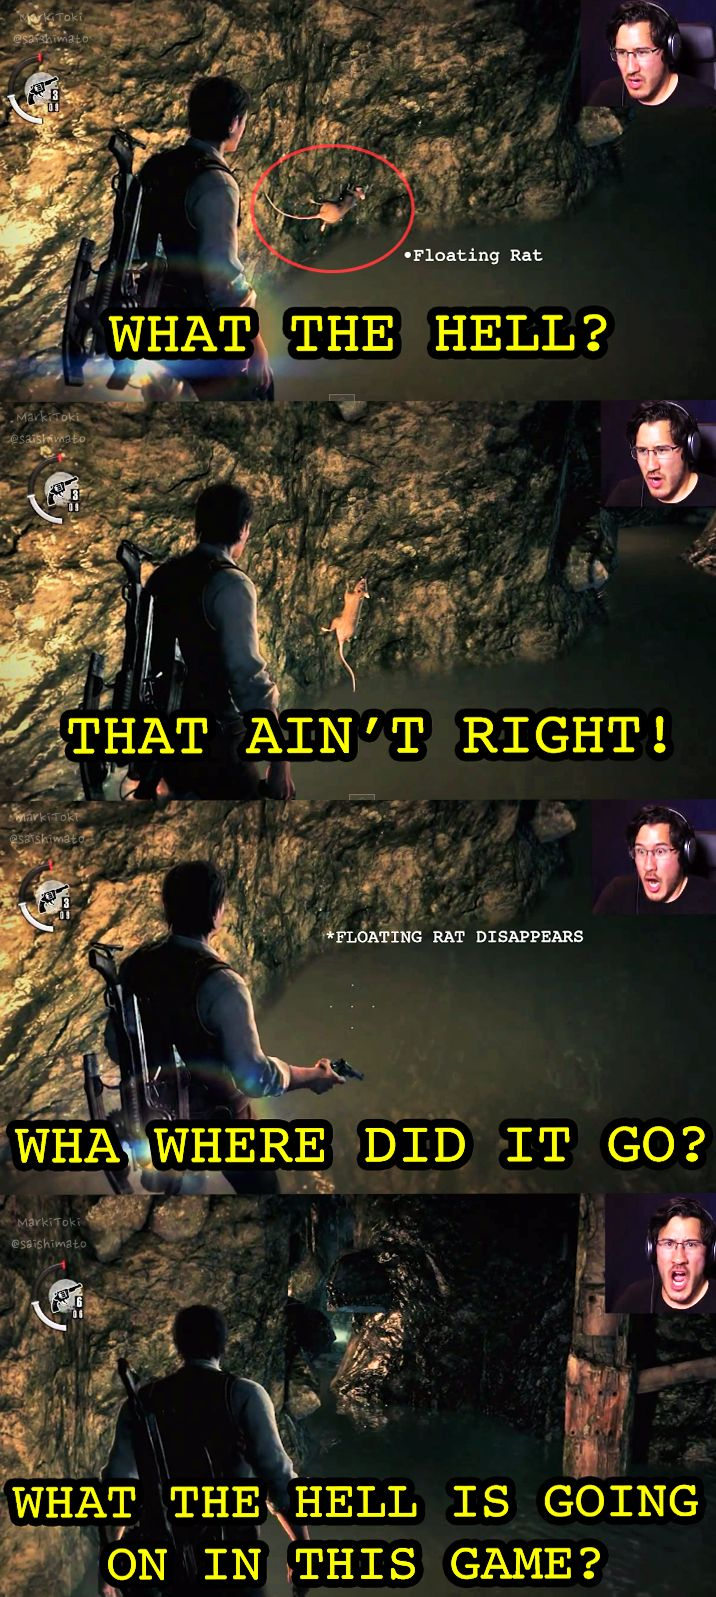 Markiplier playing The evil within, Possibly the best game reactions ever haha!!!